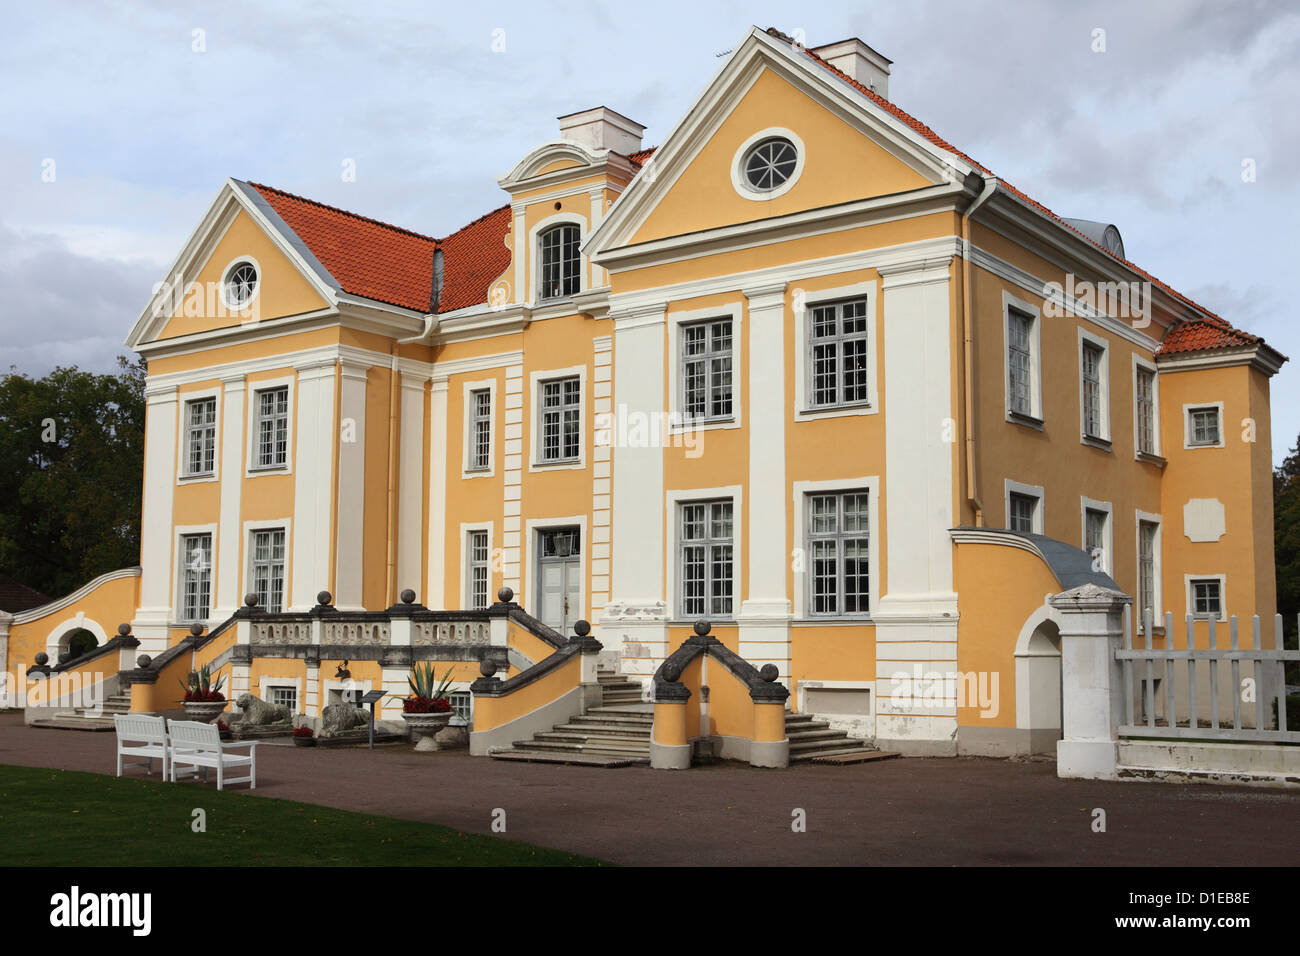 Palmse Manor, built by a Baltic German family, today part of the Museums of Virumaa Foundation, Lahemaa National - Stock Image